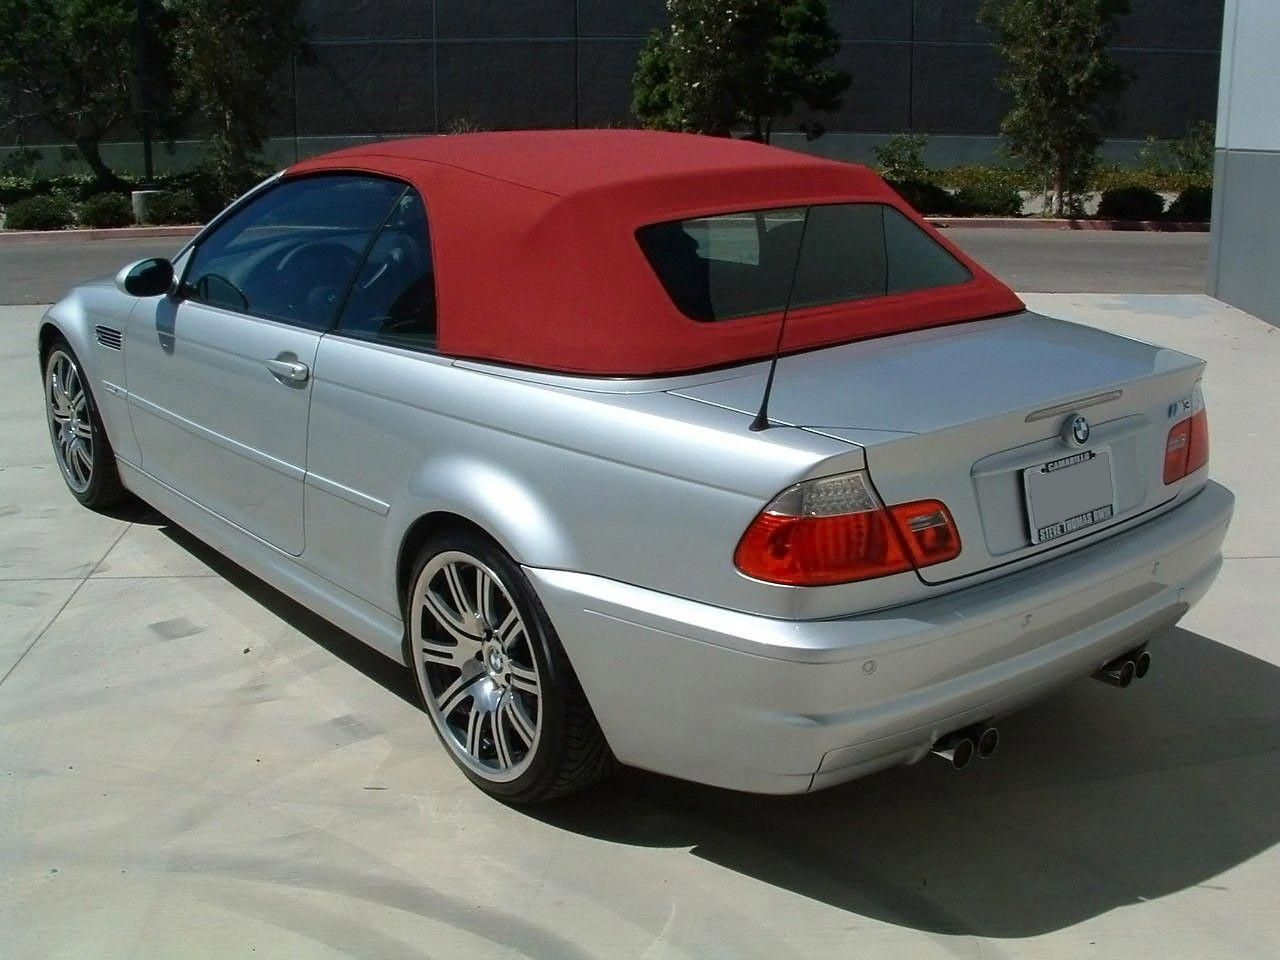 Haartz Cloth Convertible Top Colors Double Click On Above Image To View Full Picture Customvww12 Bmw 3 Series Convertible Bmw 3 Series Bmw Convertible